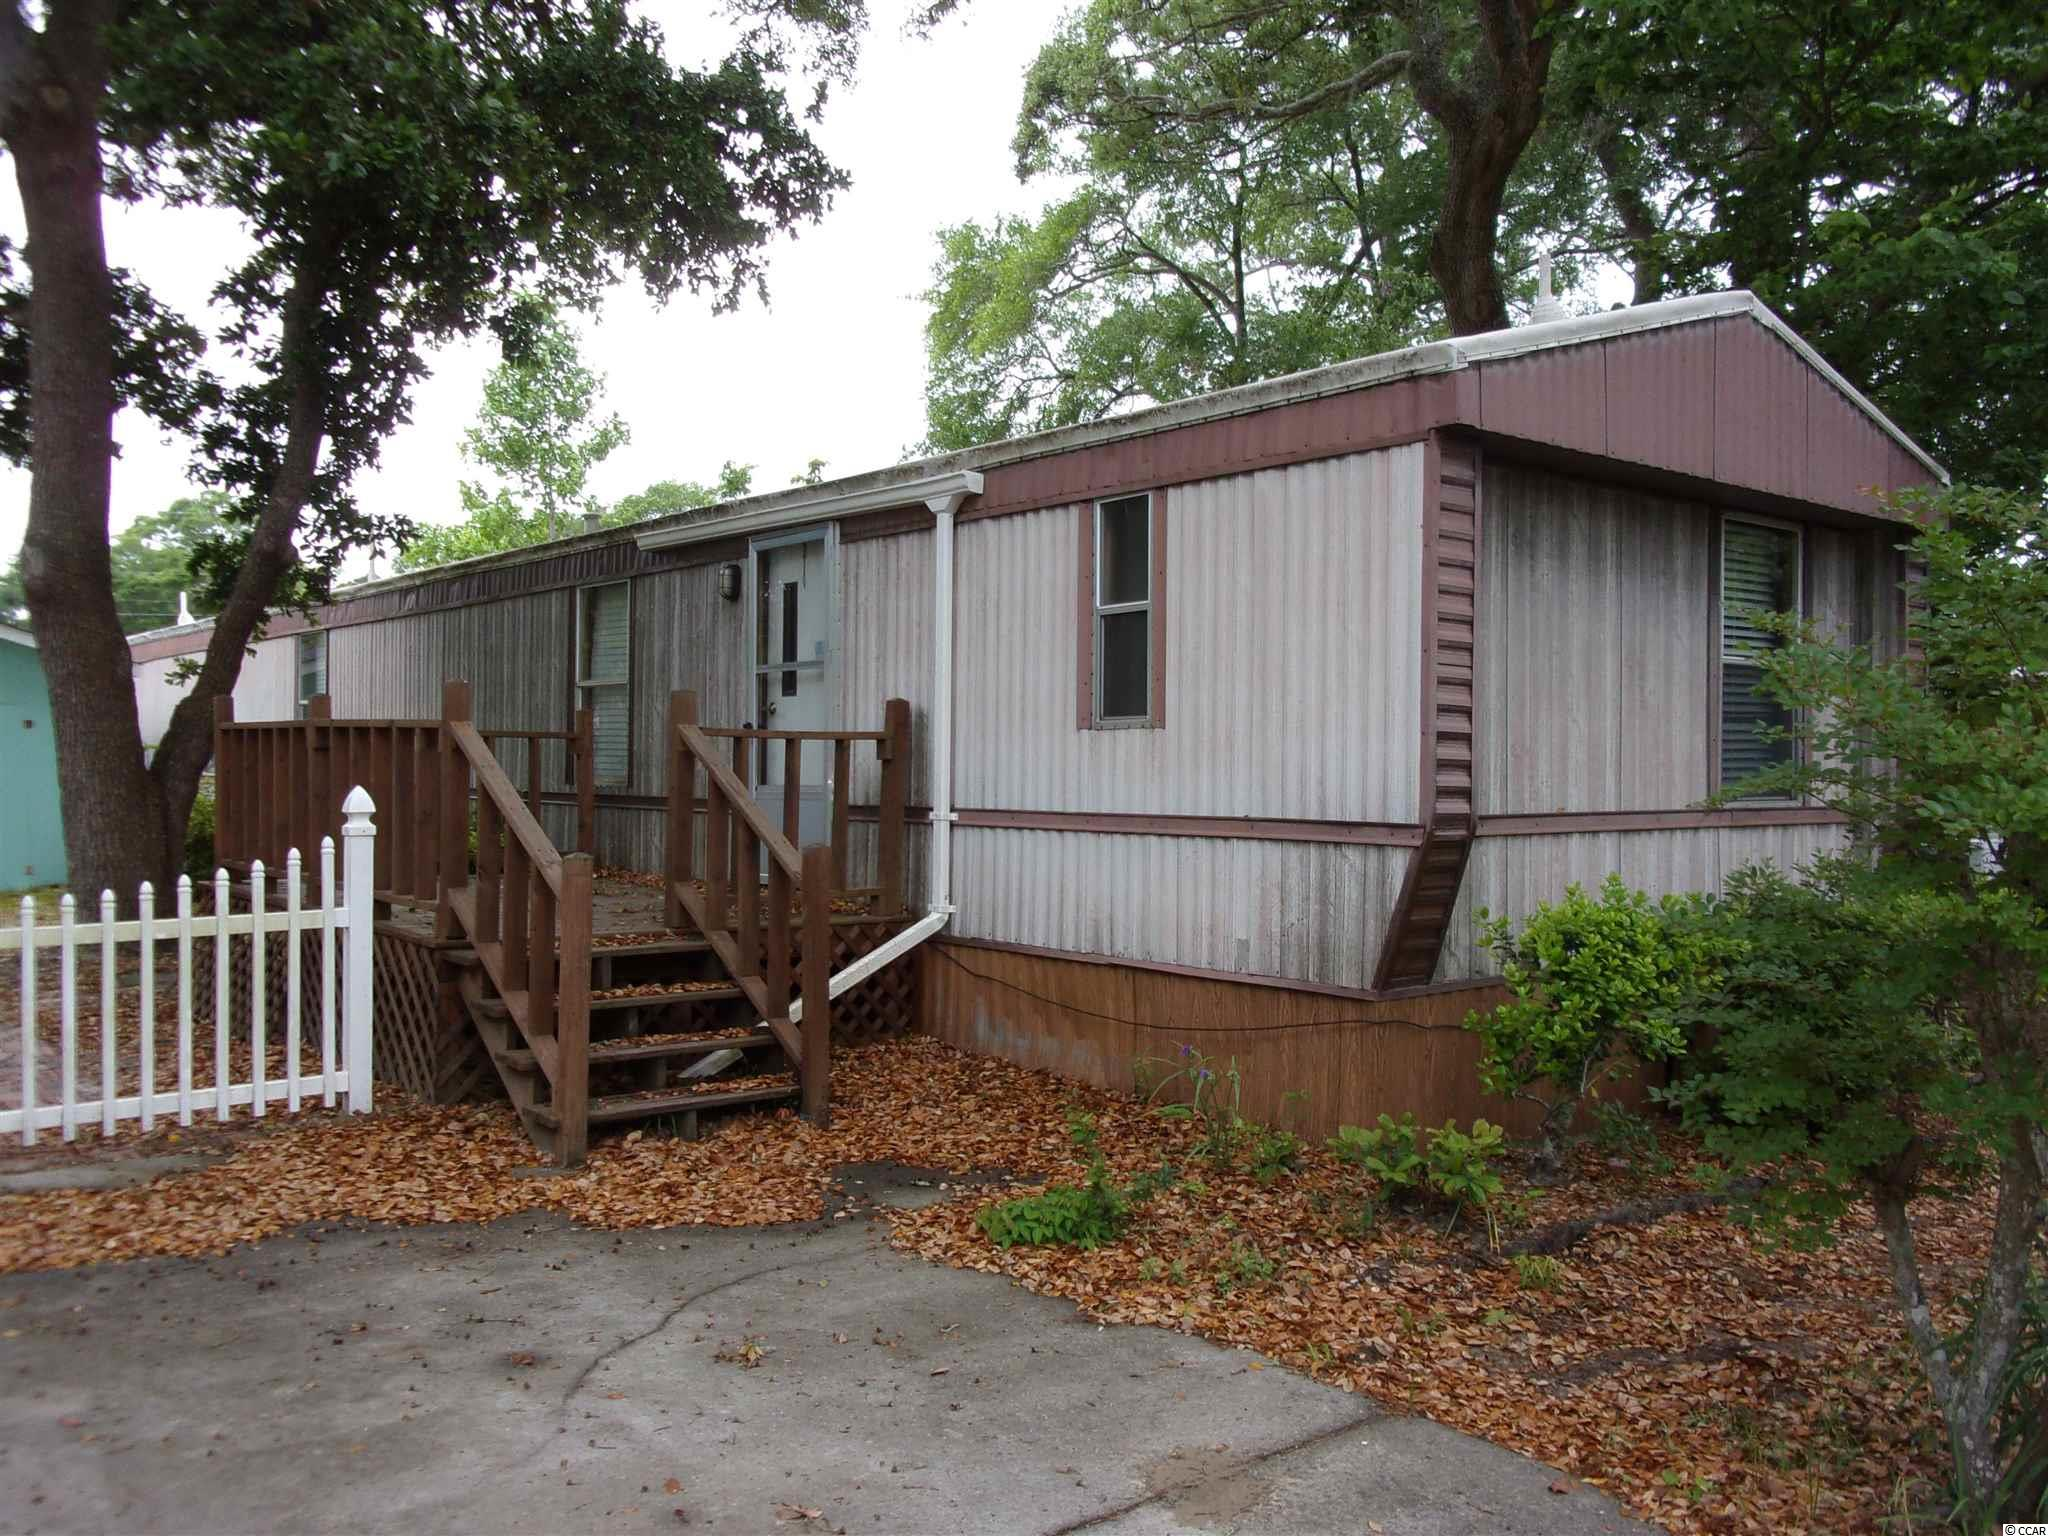 Nice 2 bedroom 2 bath 1984 Vogue 14 X 67 single wide manufactured home with an room addition added. Must see to appreciate. No HOA and short golf cart ride to beach.  Has front deck and side deck and storage building as well.   SQUARE FOOTAGE IS APPROXIMATE AND NOT GUARANTEED. BUYER IS RESPONSIBLE FOR VERIFICATION.